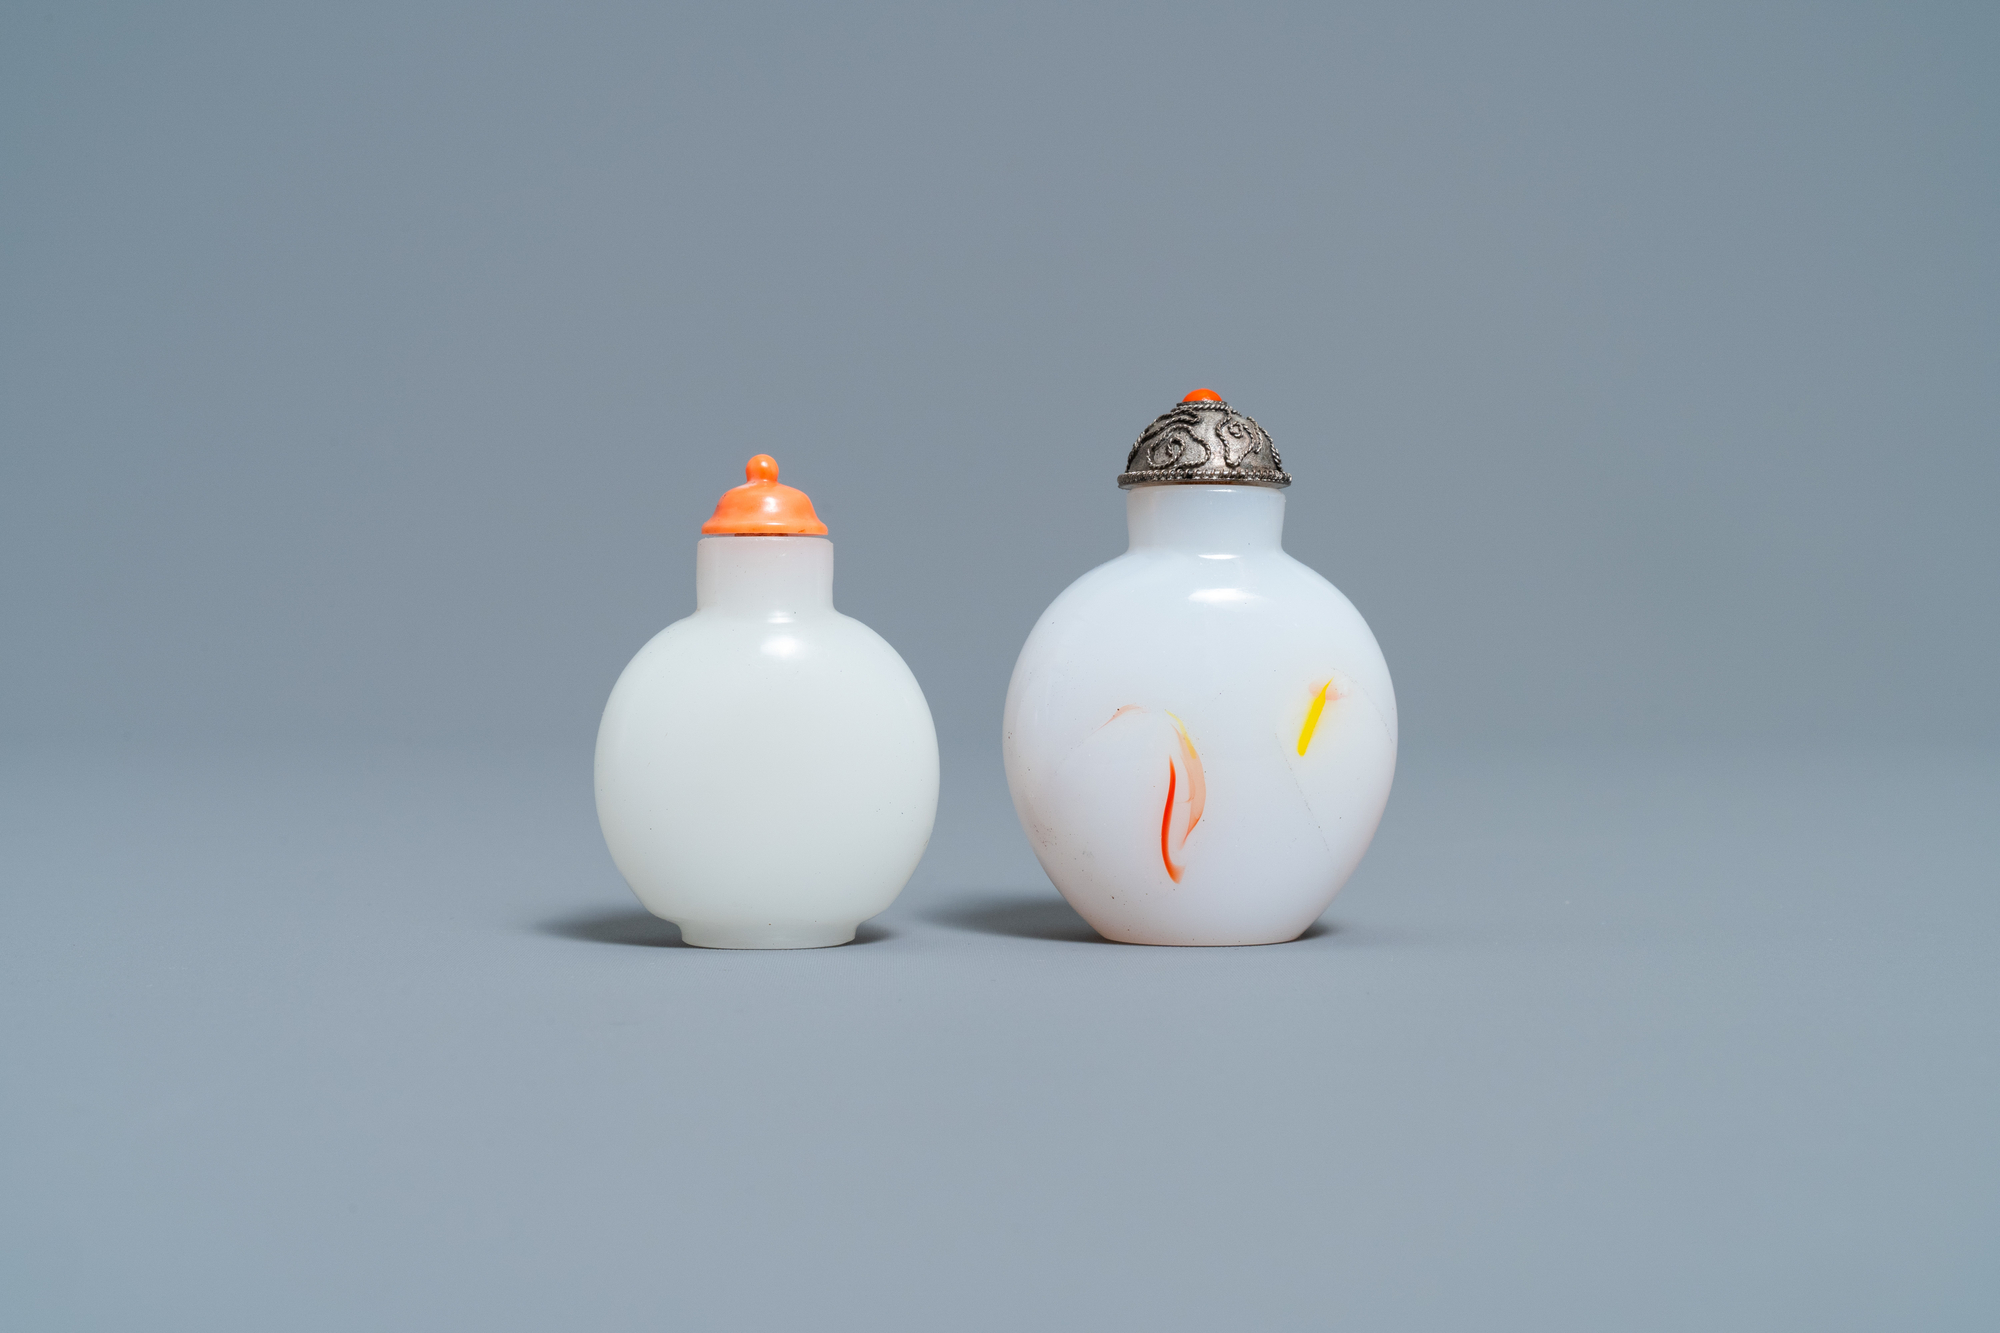 A Chinese white jade coral-topped snuff bottle and one in glass with inclusions, 19th C. - Image 2 of 7